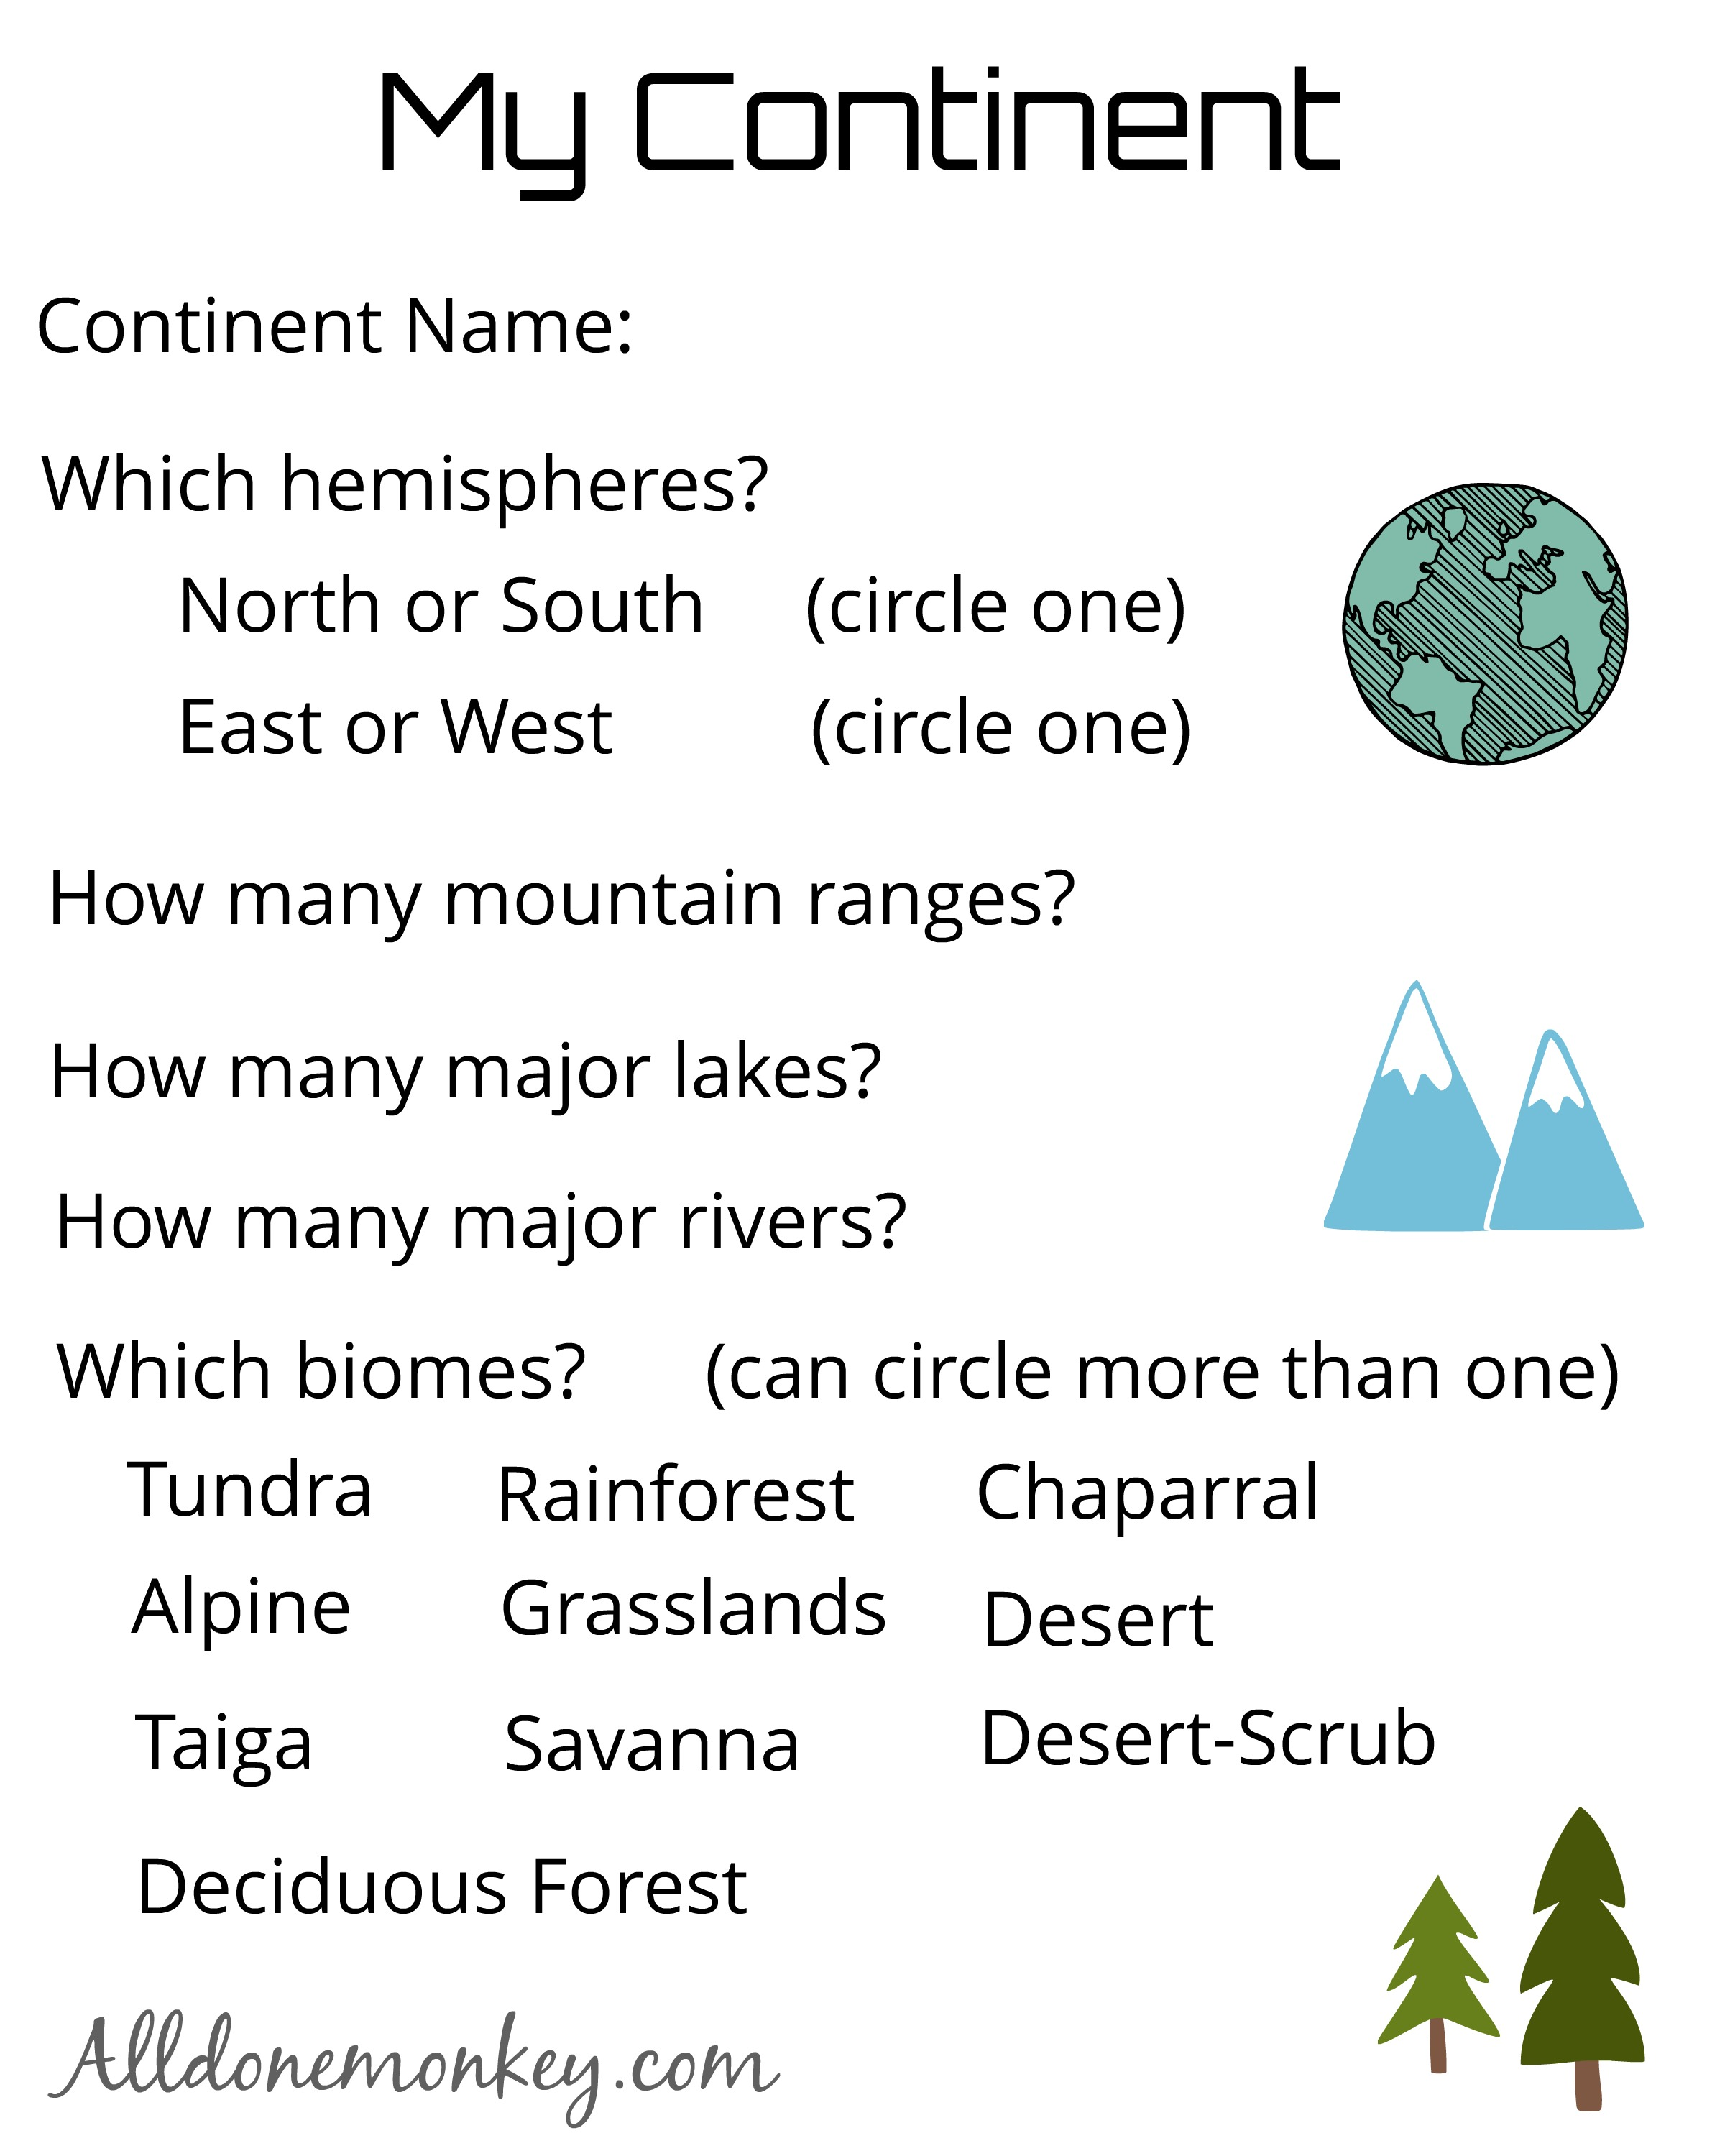 Geography Activity for Kids: Design Your Own Continent | Alldonemonkey.com